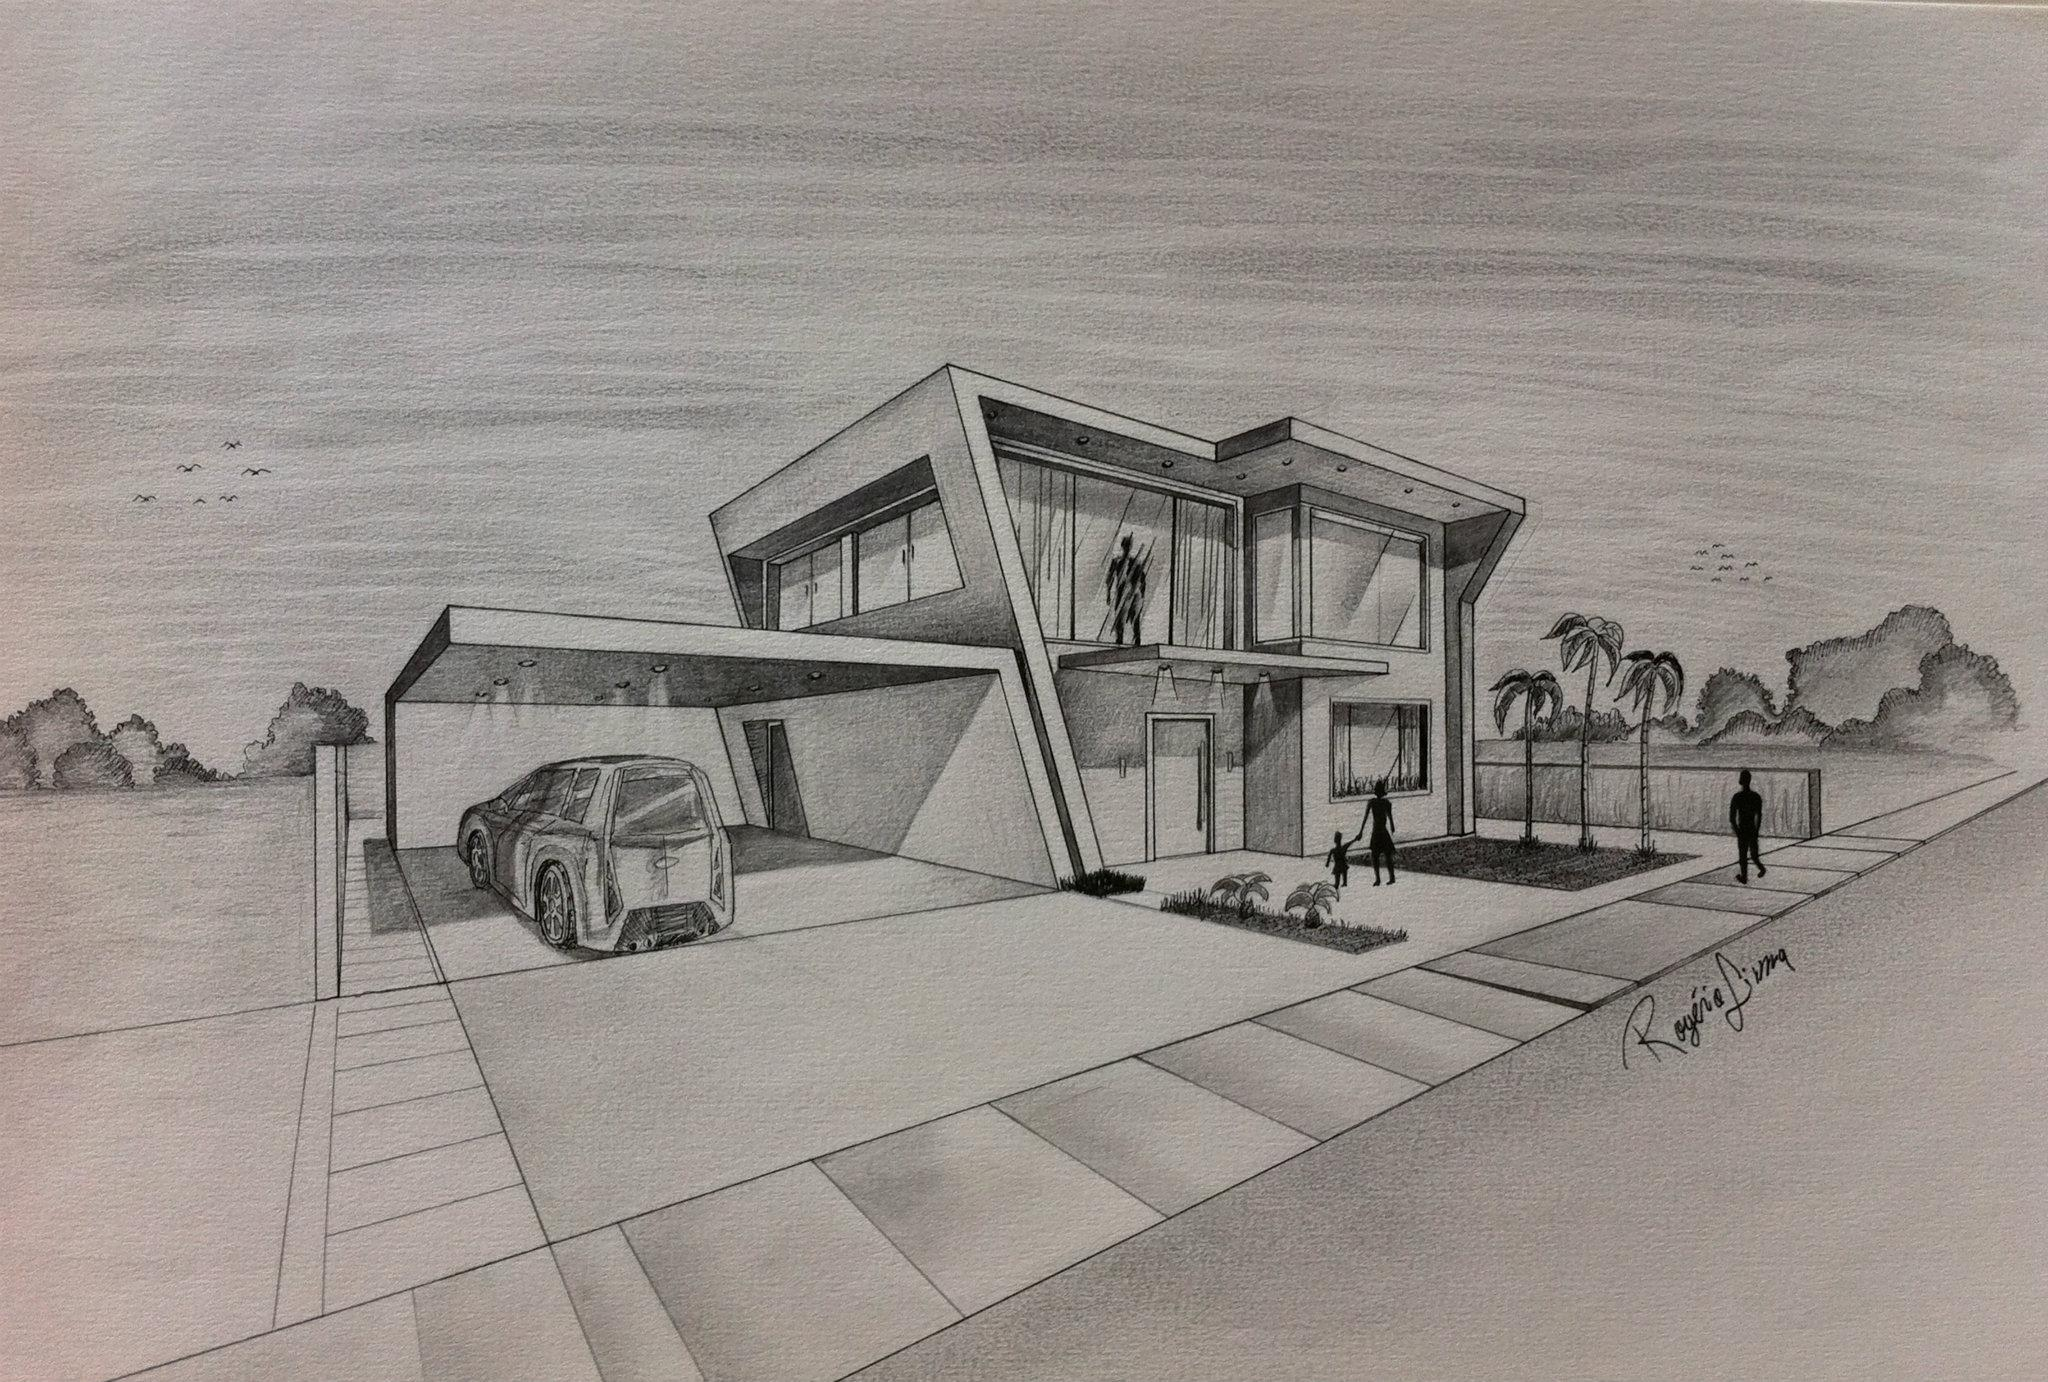 Architect hand drawing at free for for Online architecture design